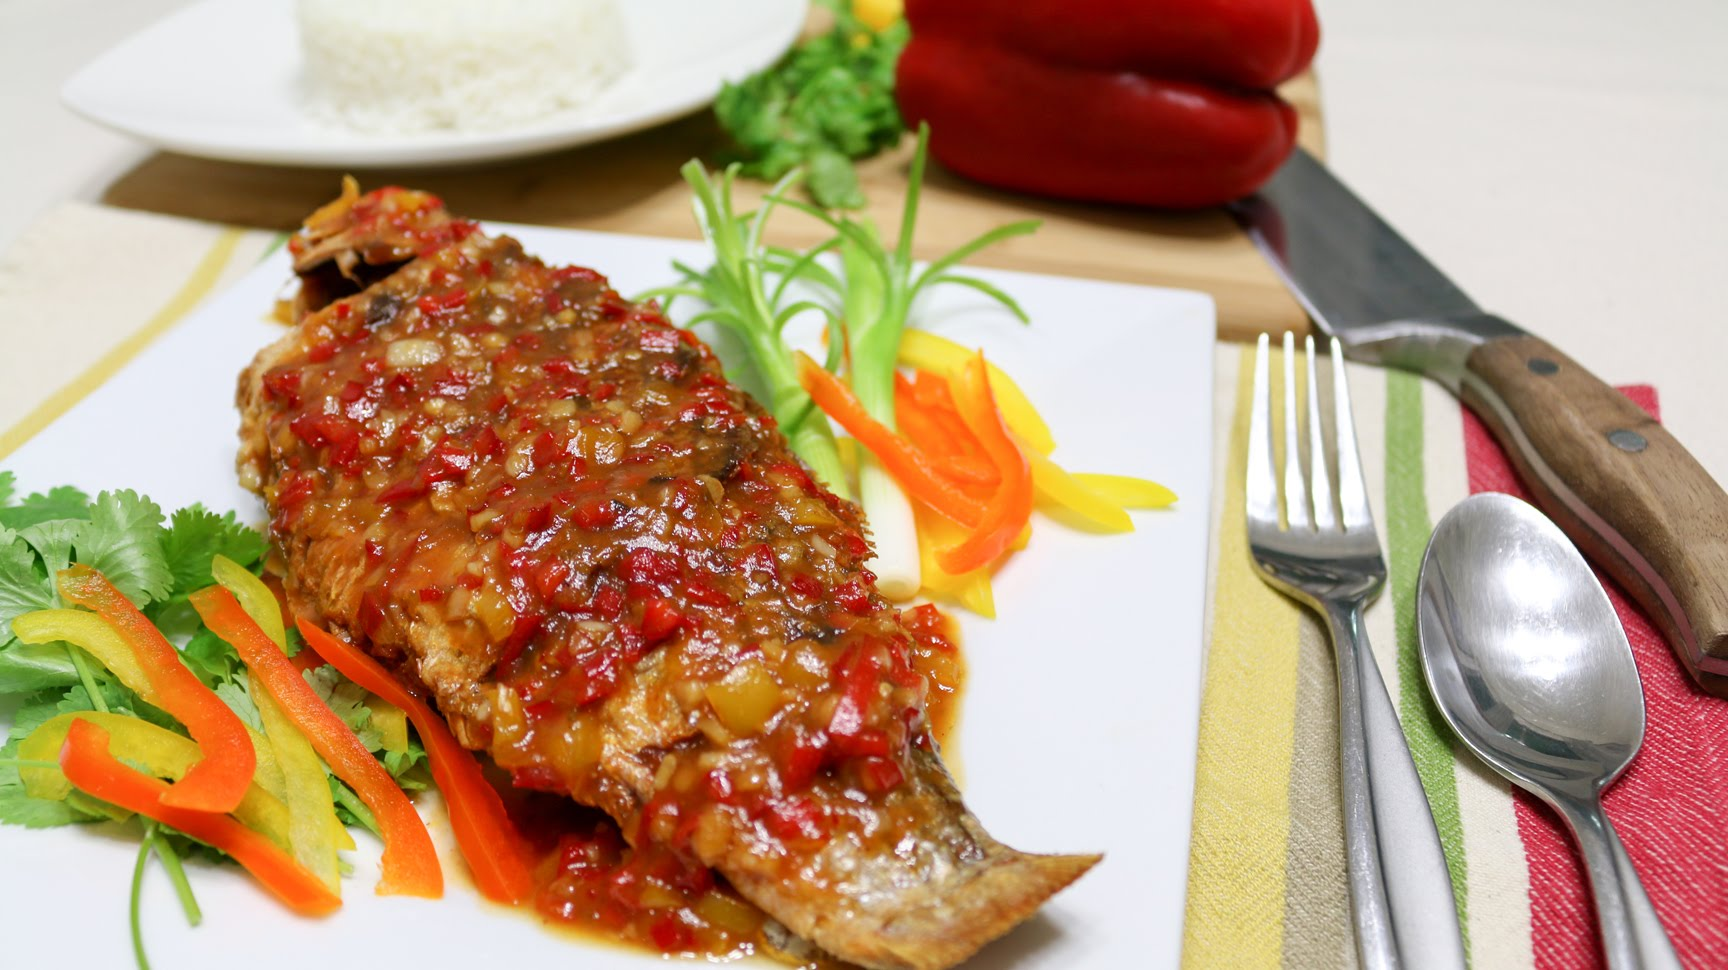 Tilapia: From White to Colorful